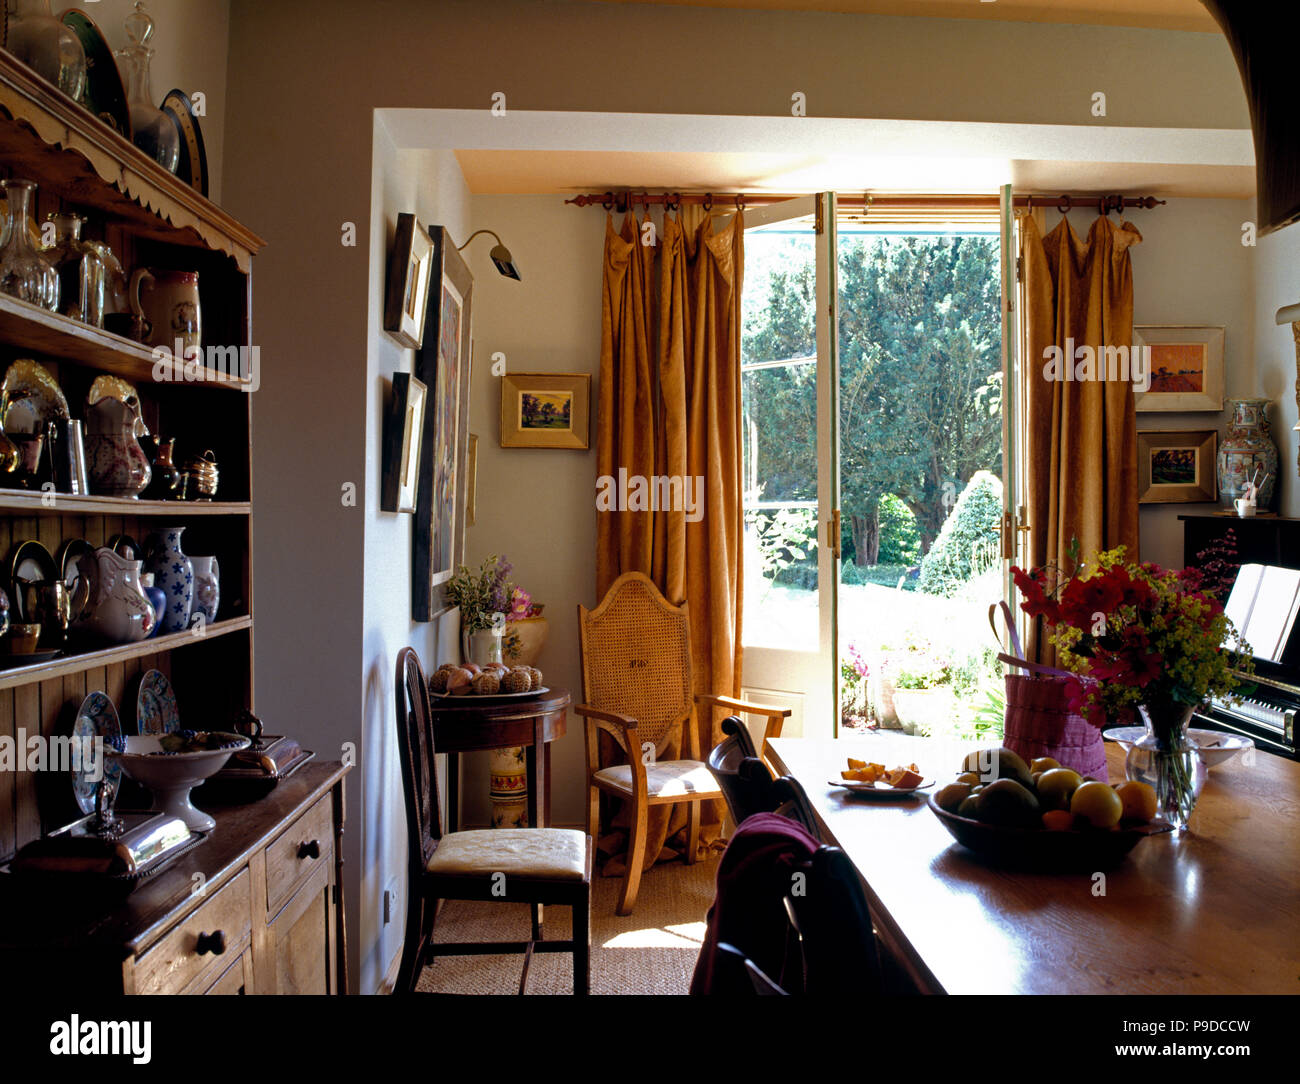 Old Pine Dresser In Small Country Dining Room With Gold Velvet Curtains On French Windows Open To The Garden